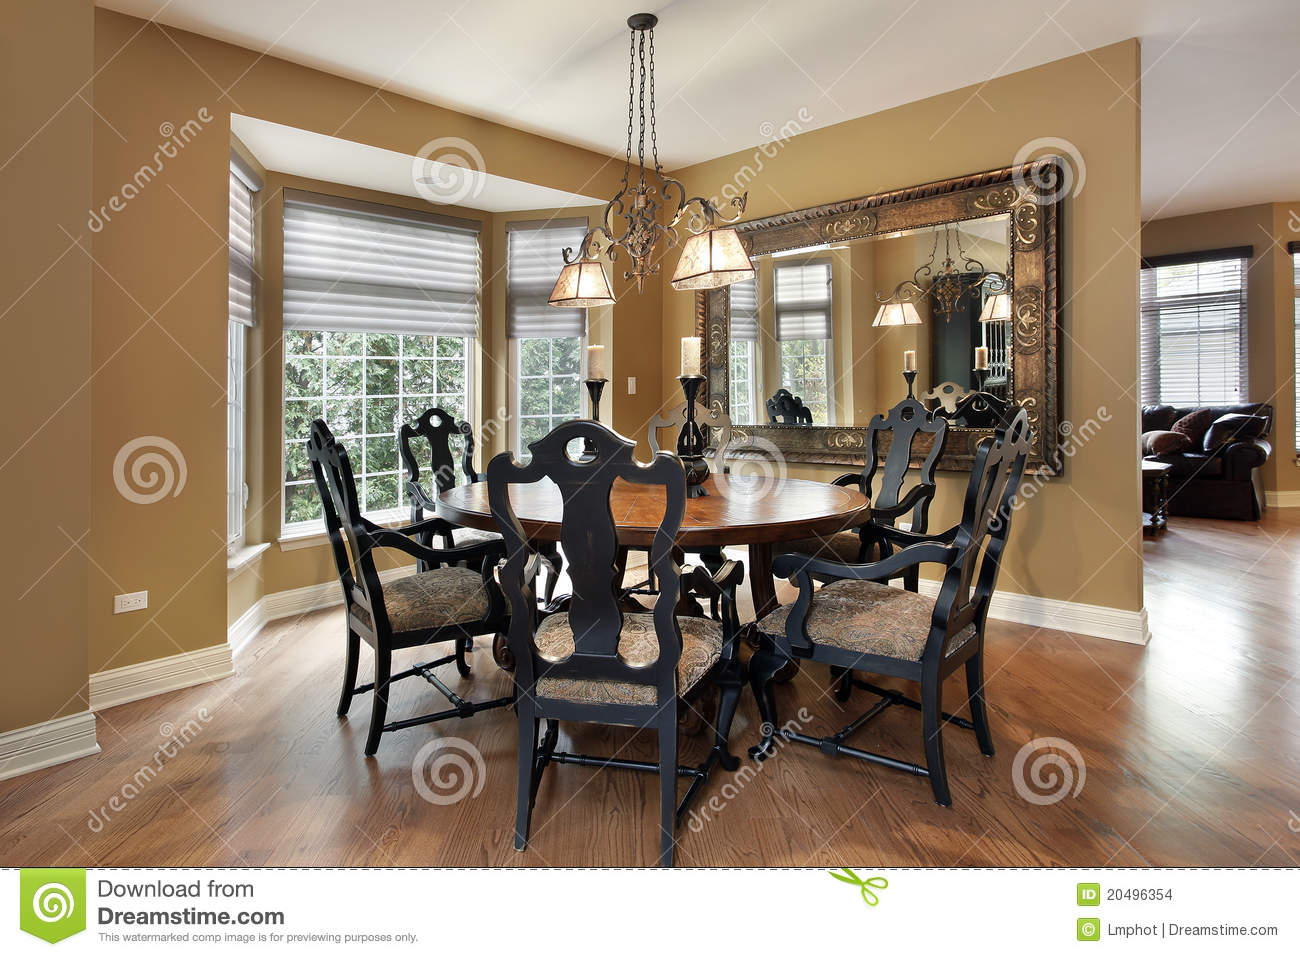 Dining Room With Gold Walls Stock Photo - Image of supper ...